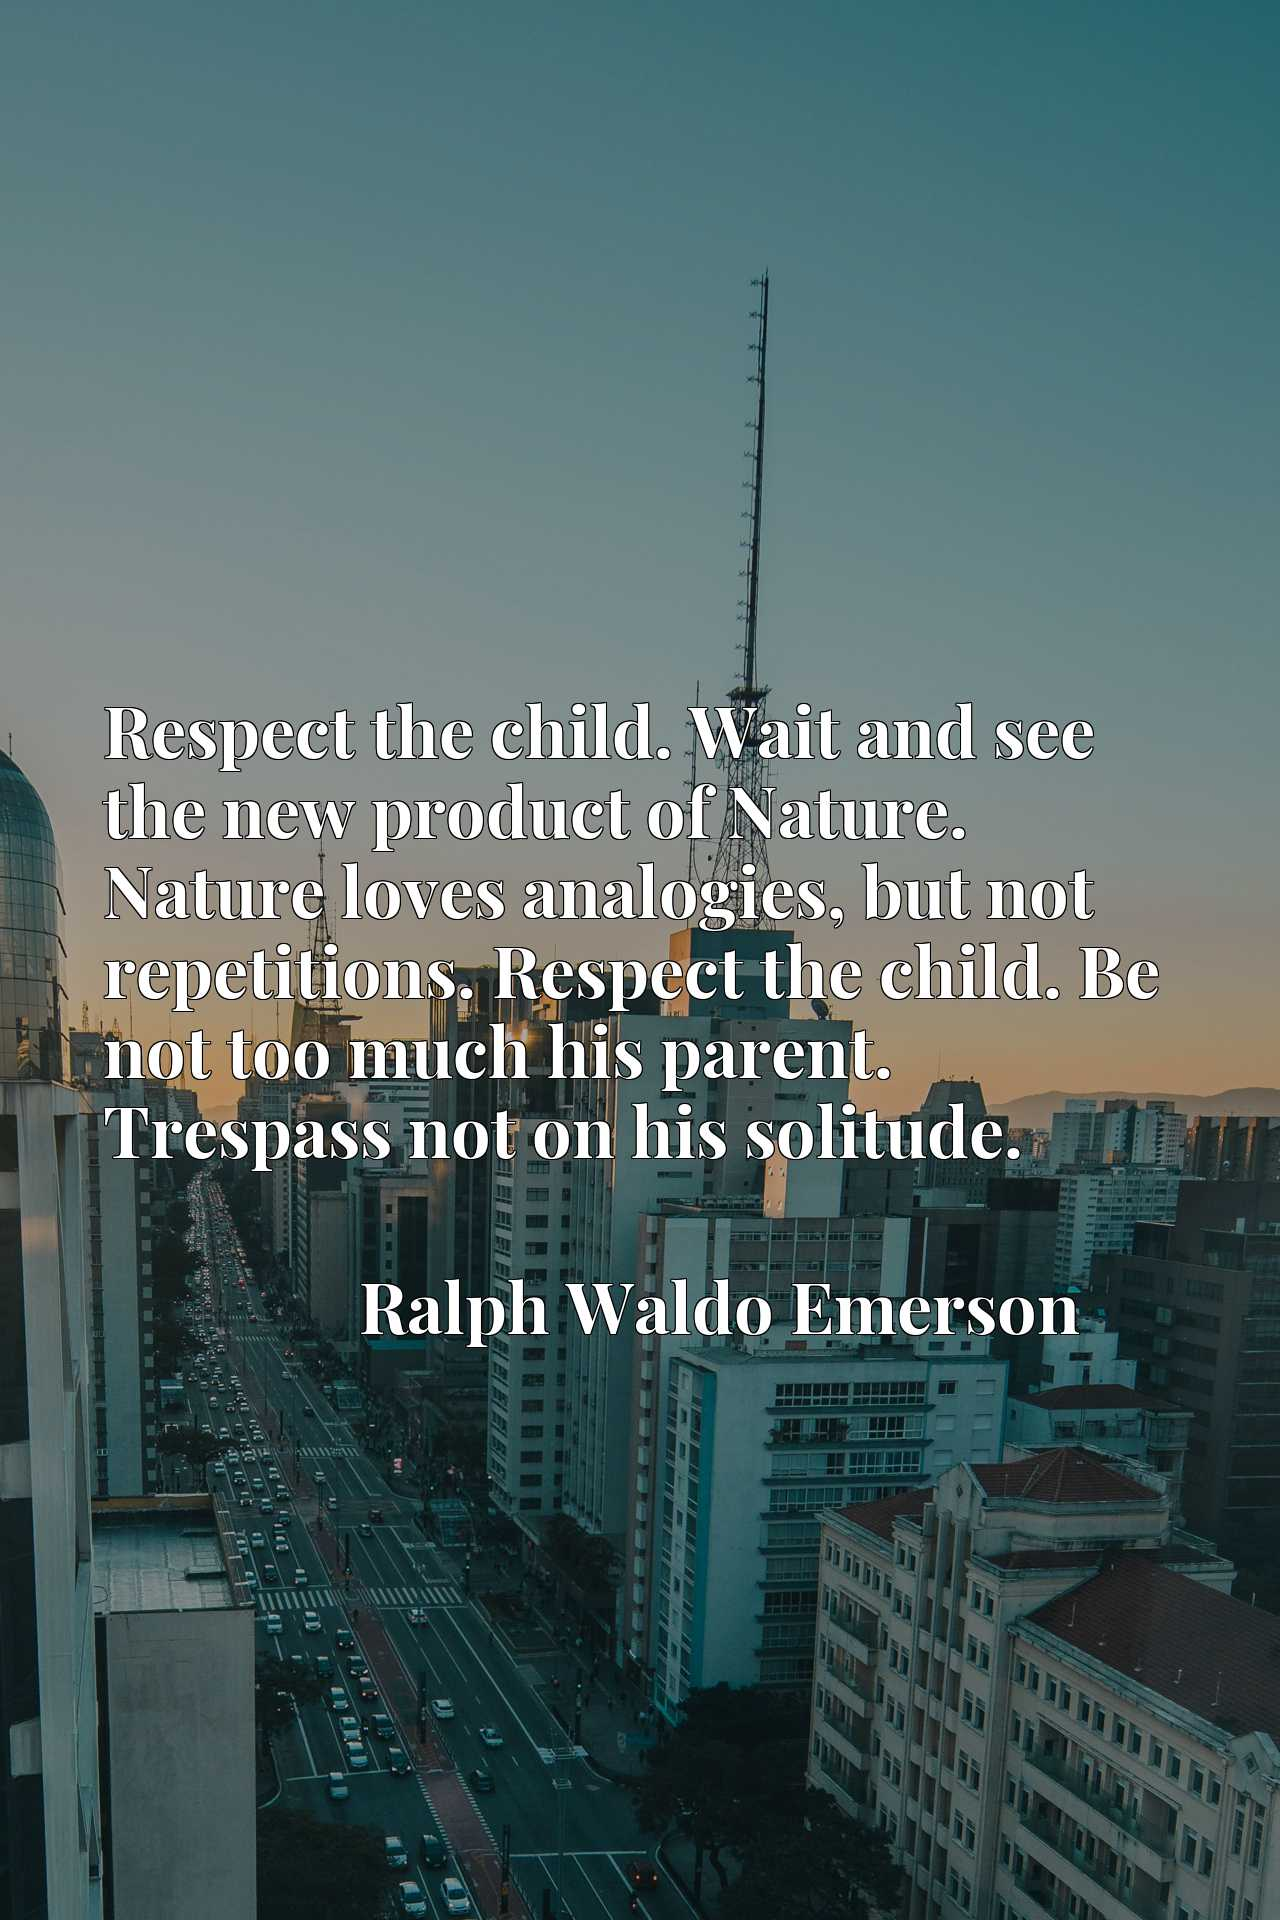 Respect the child. Wait and see the new product of Nature. Nature loves analogies, but not repetitions. Respect the child. Be not too much his parent. Trespass not on his solitude.